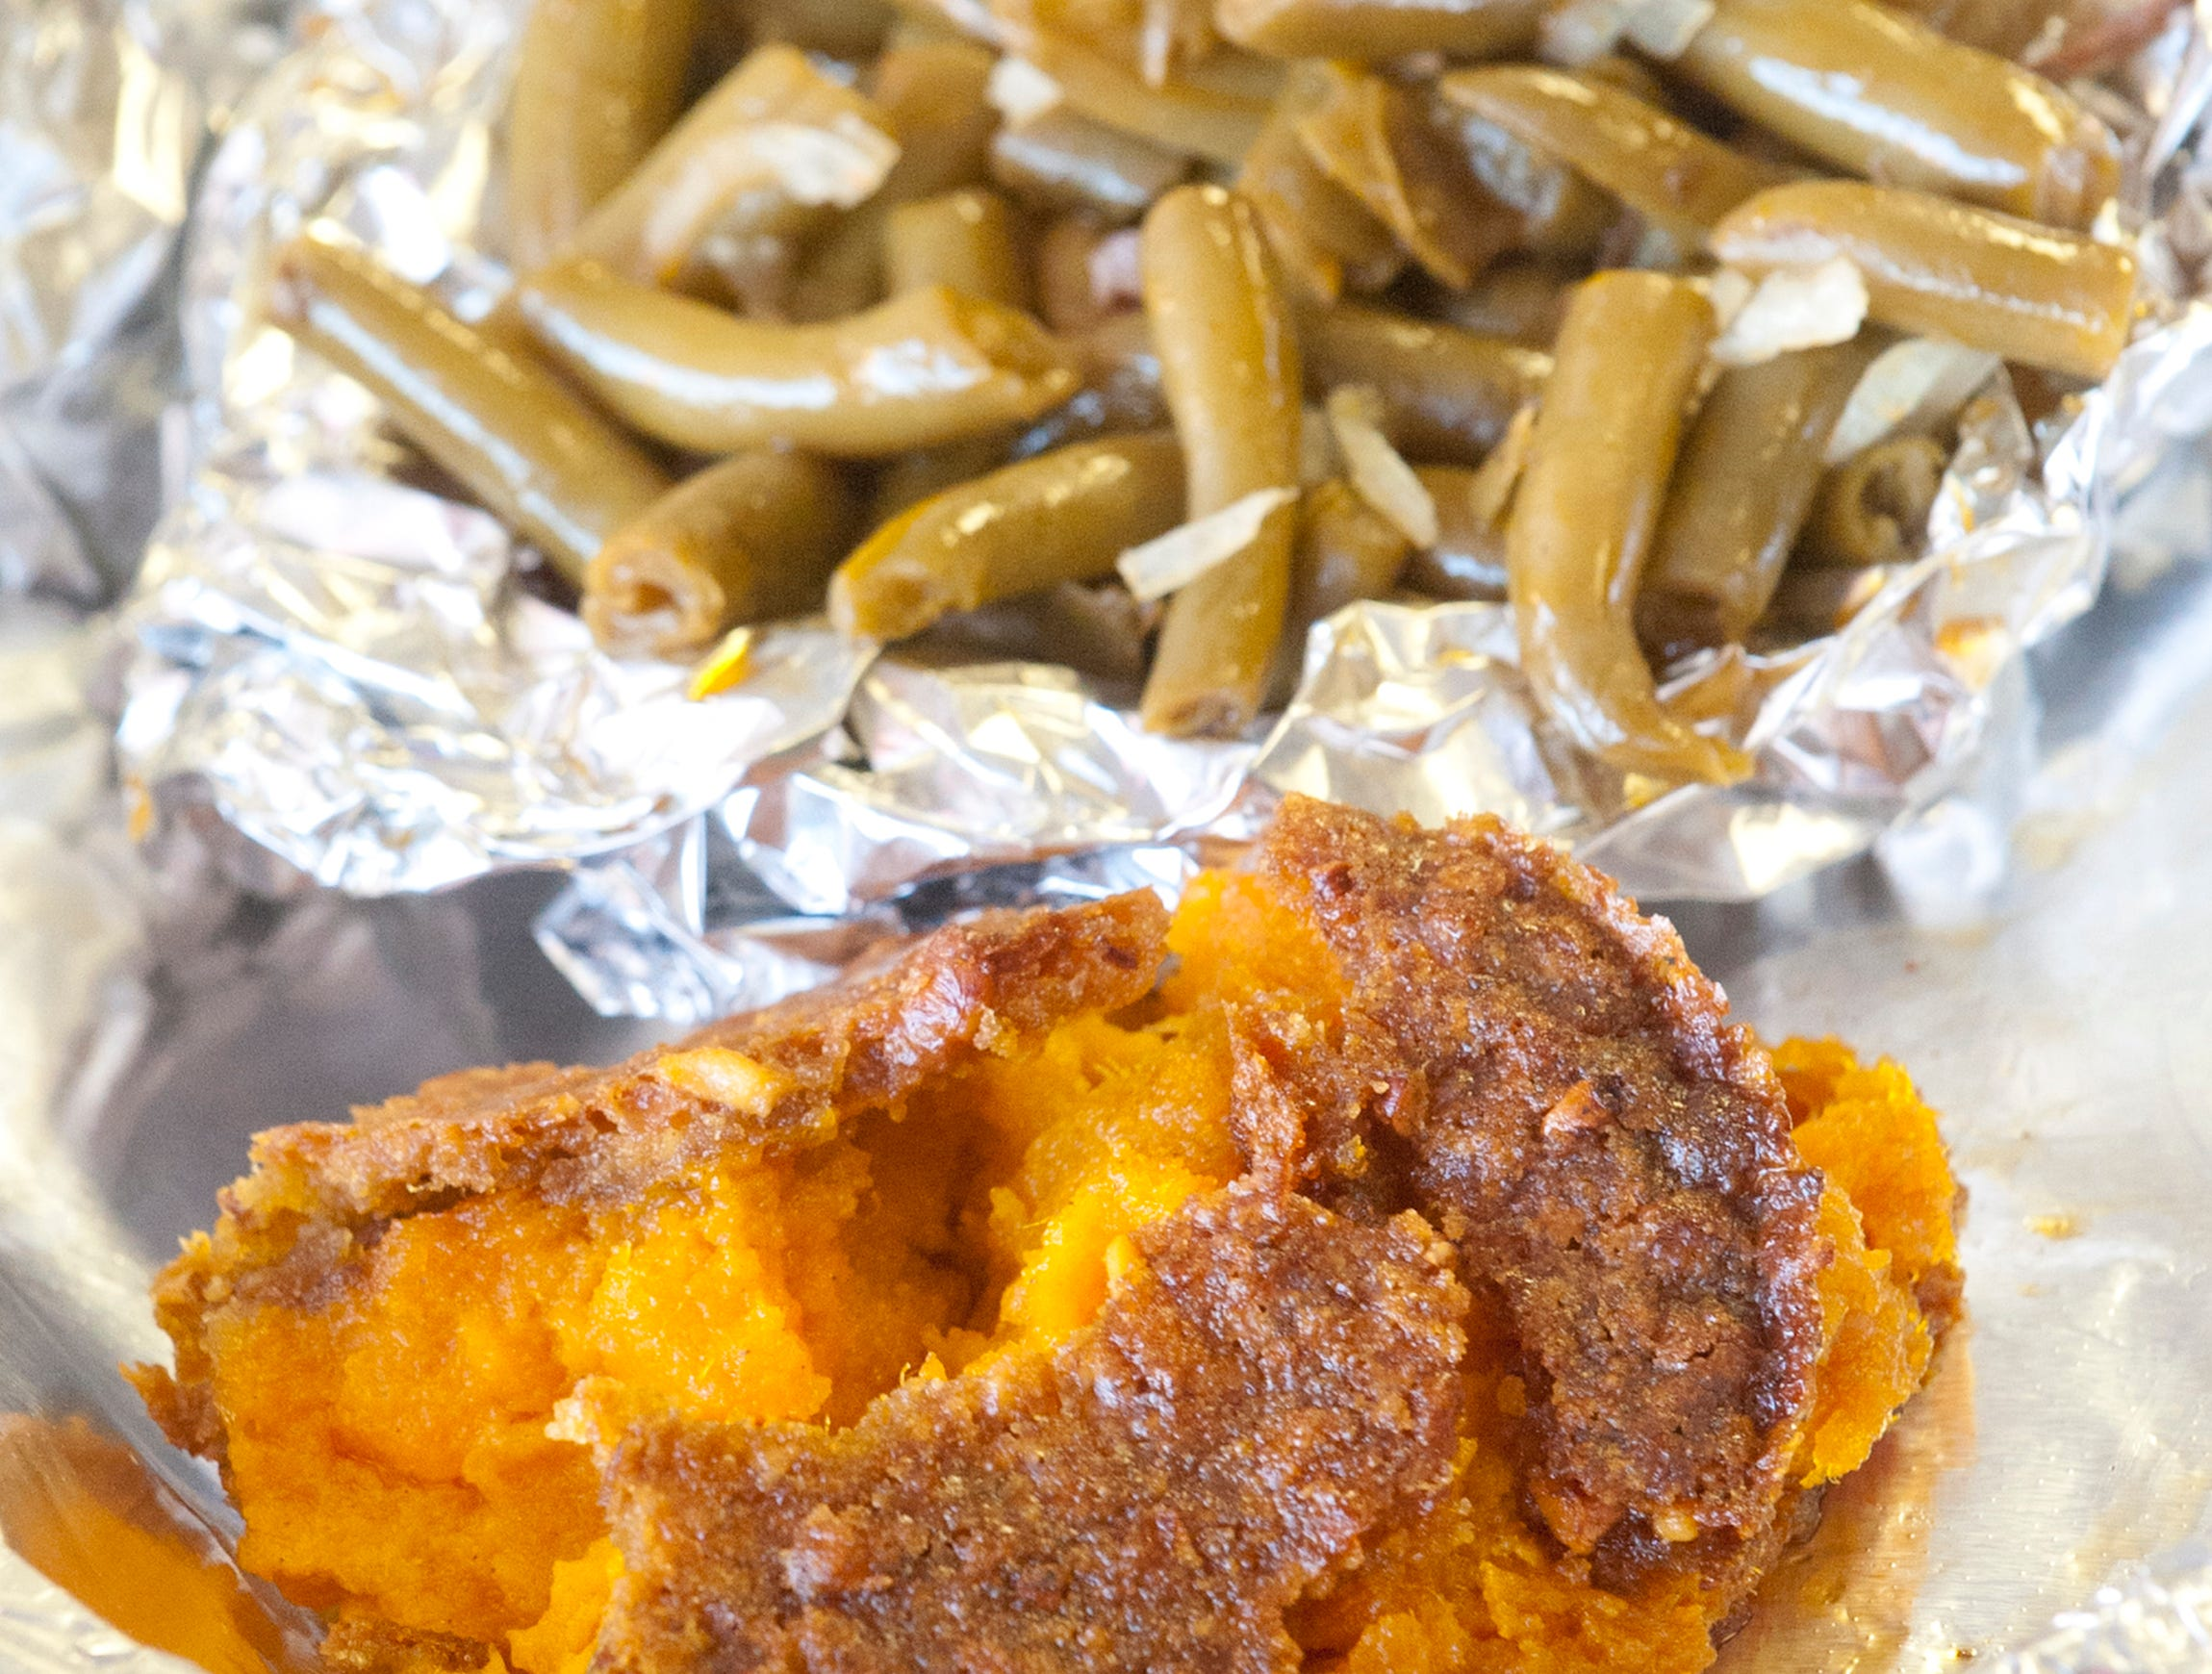 Among the sides at Babie Bac'z Good Grill is its sweet potato casserole made with sweet potatoes, caramelized brown sugar, pecans and cinnamon, and the eatery's home-style green beans made with the restaurant's original dry rub seasoning and jowl bacon.October 24, 2018